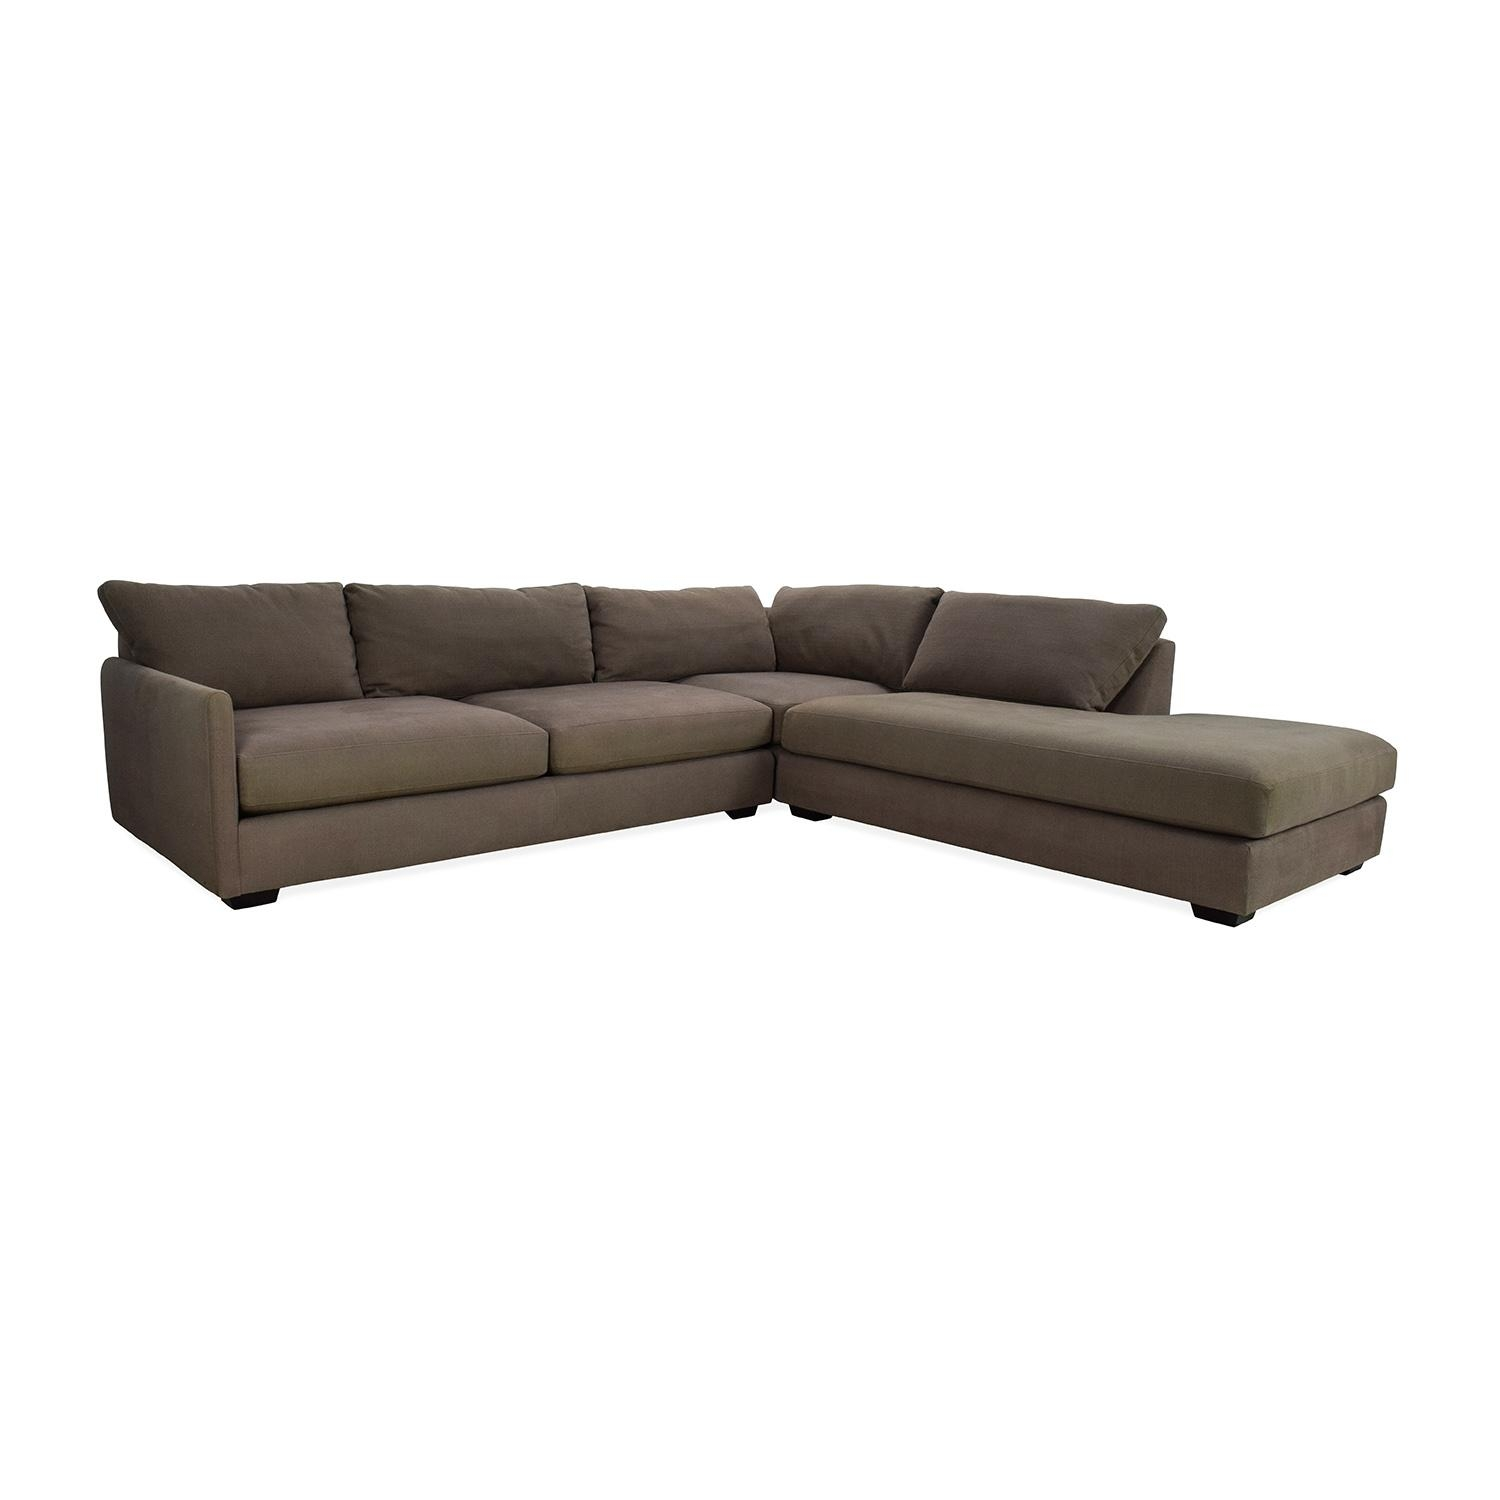 82% Off - Crate And Barrel Crate & Barrel Domino Sectional Sofa with regard to Sectional Crate And Barrel